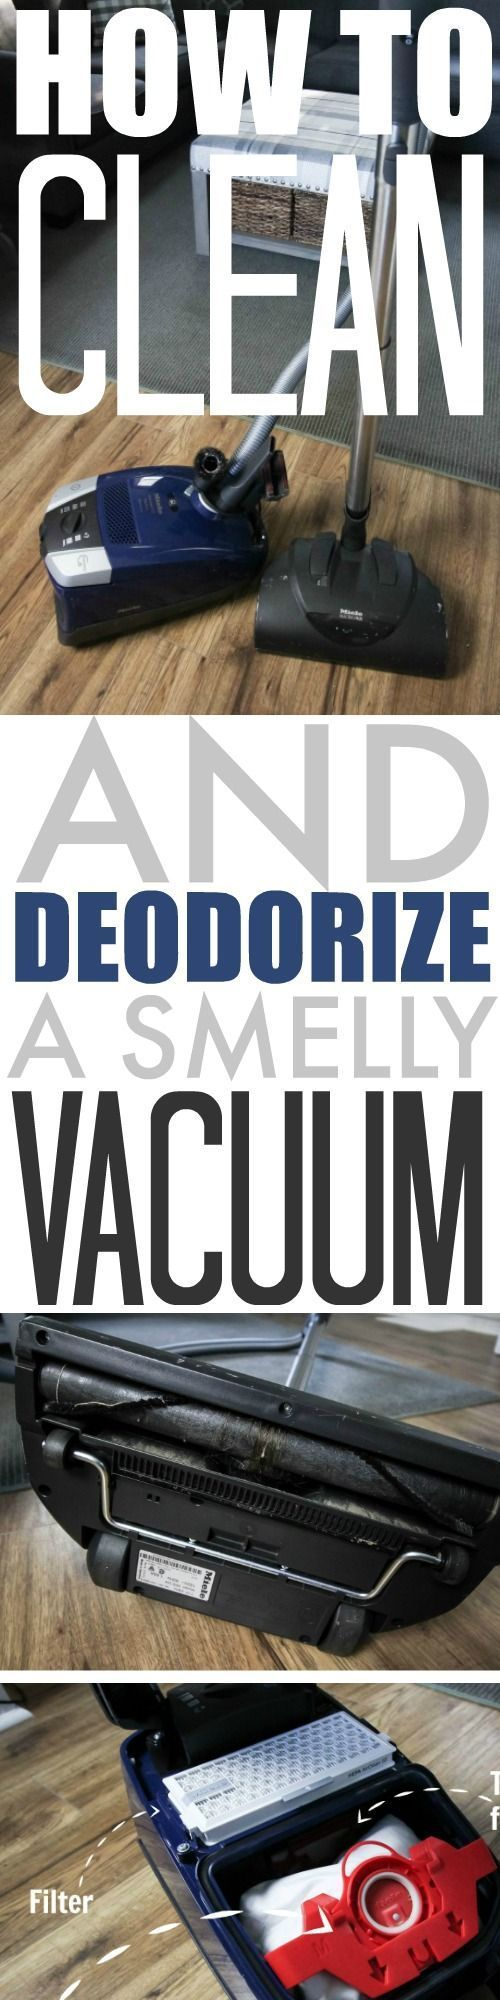 If you have a stinky vacuum, it can be really nice to know how to deodorize vacuum cleaners so you can breathe freely again and have a fresh smelling home without buying a whole new machine. Here's how it's done!